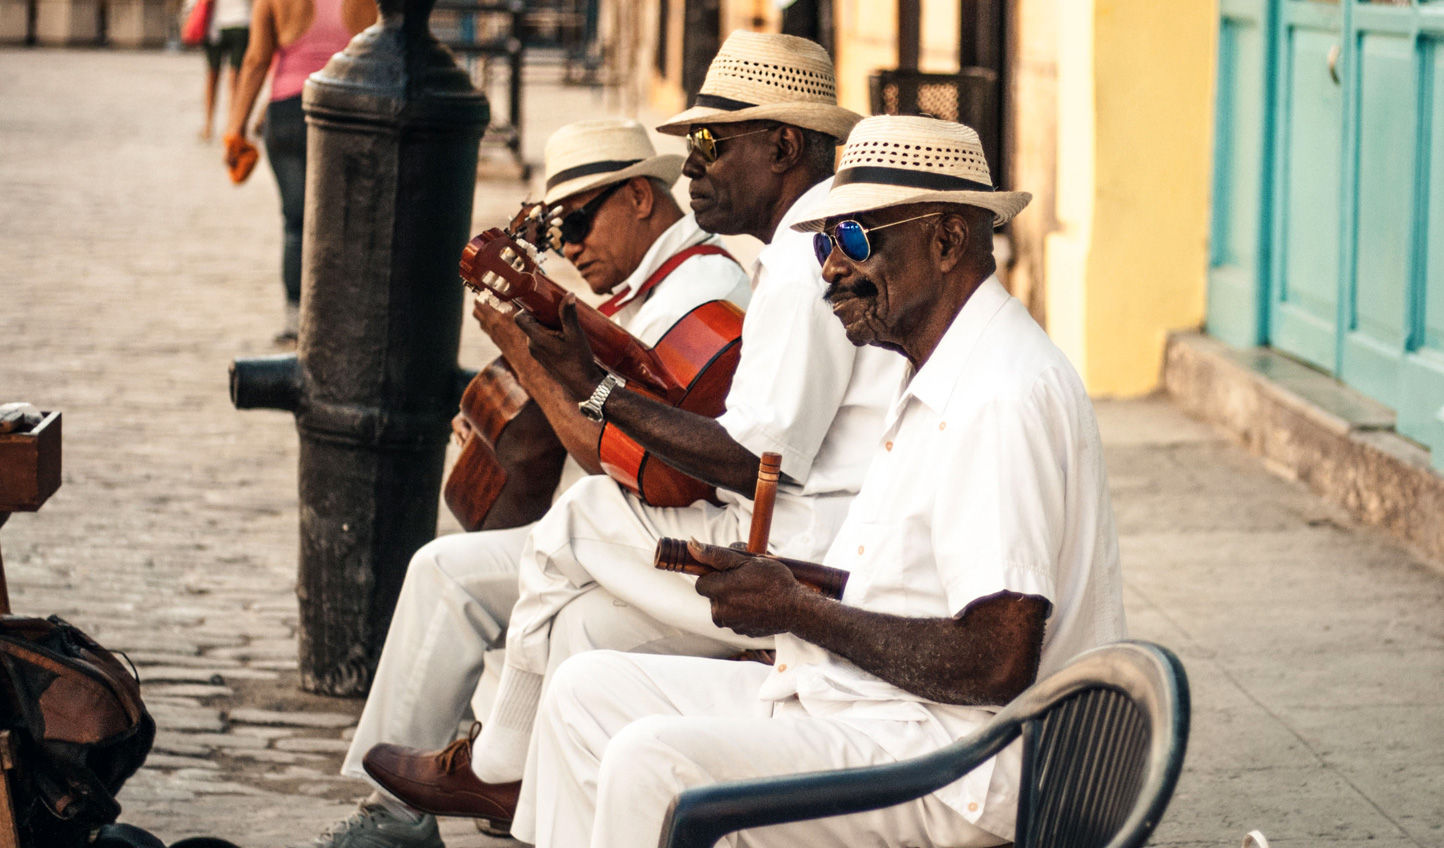 Listen to the rhythms of Cuba's streets